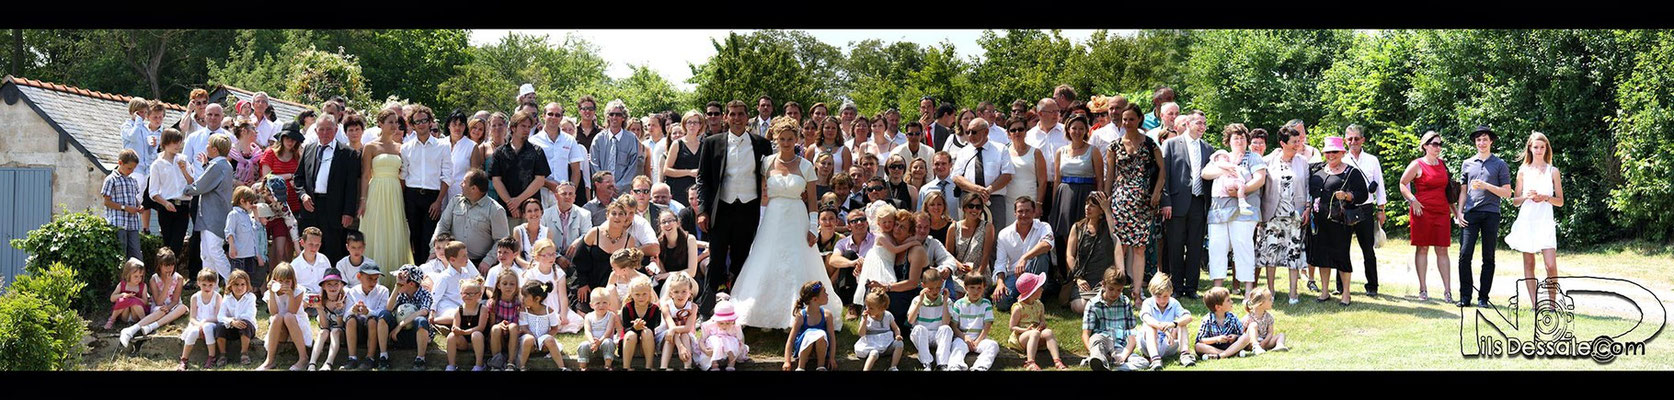 Photographe mariage-Photo de groupe